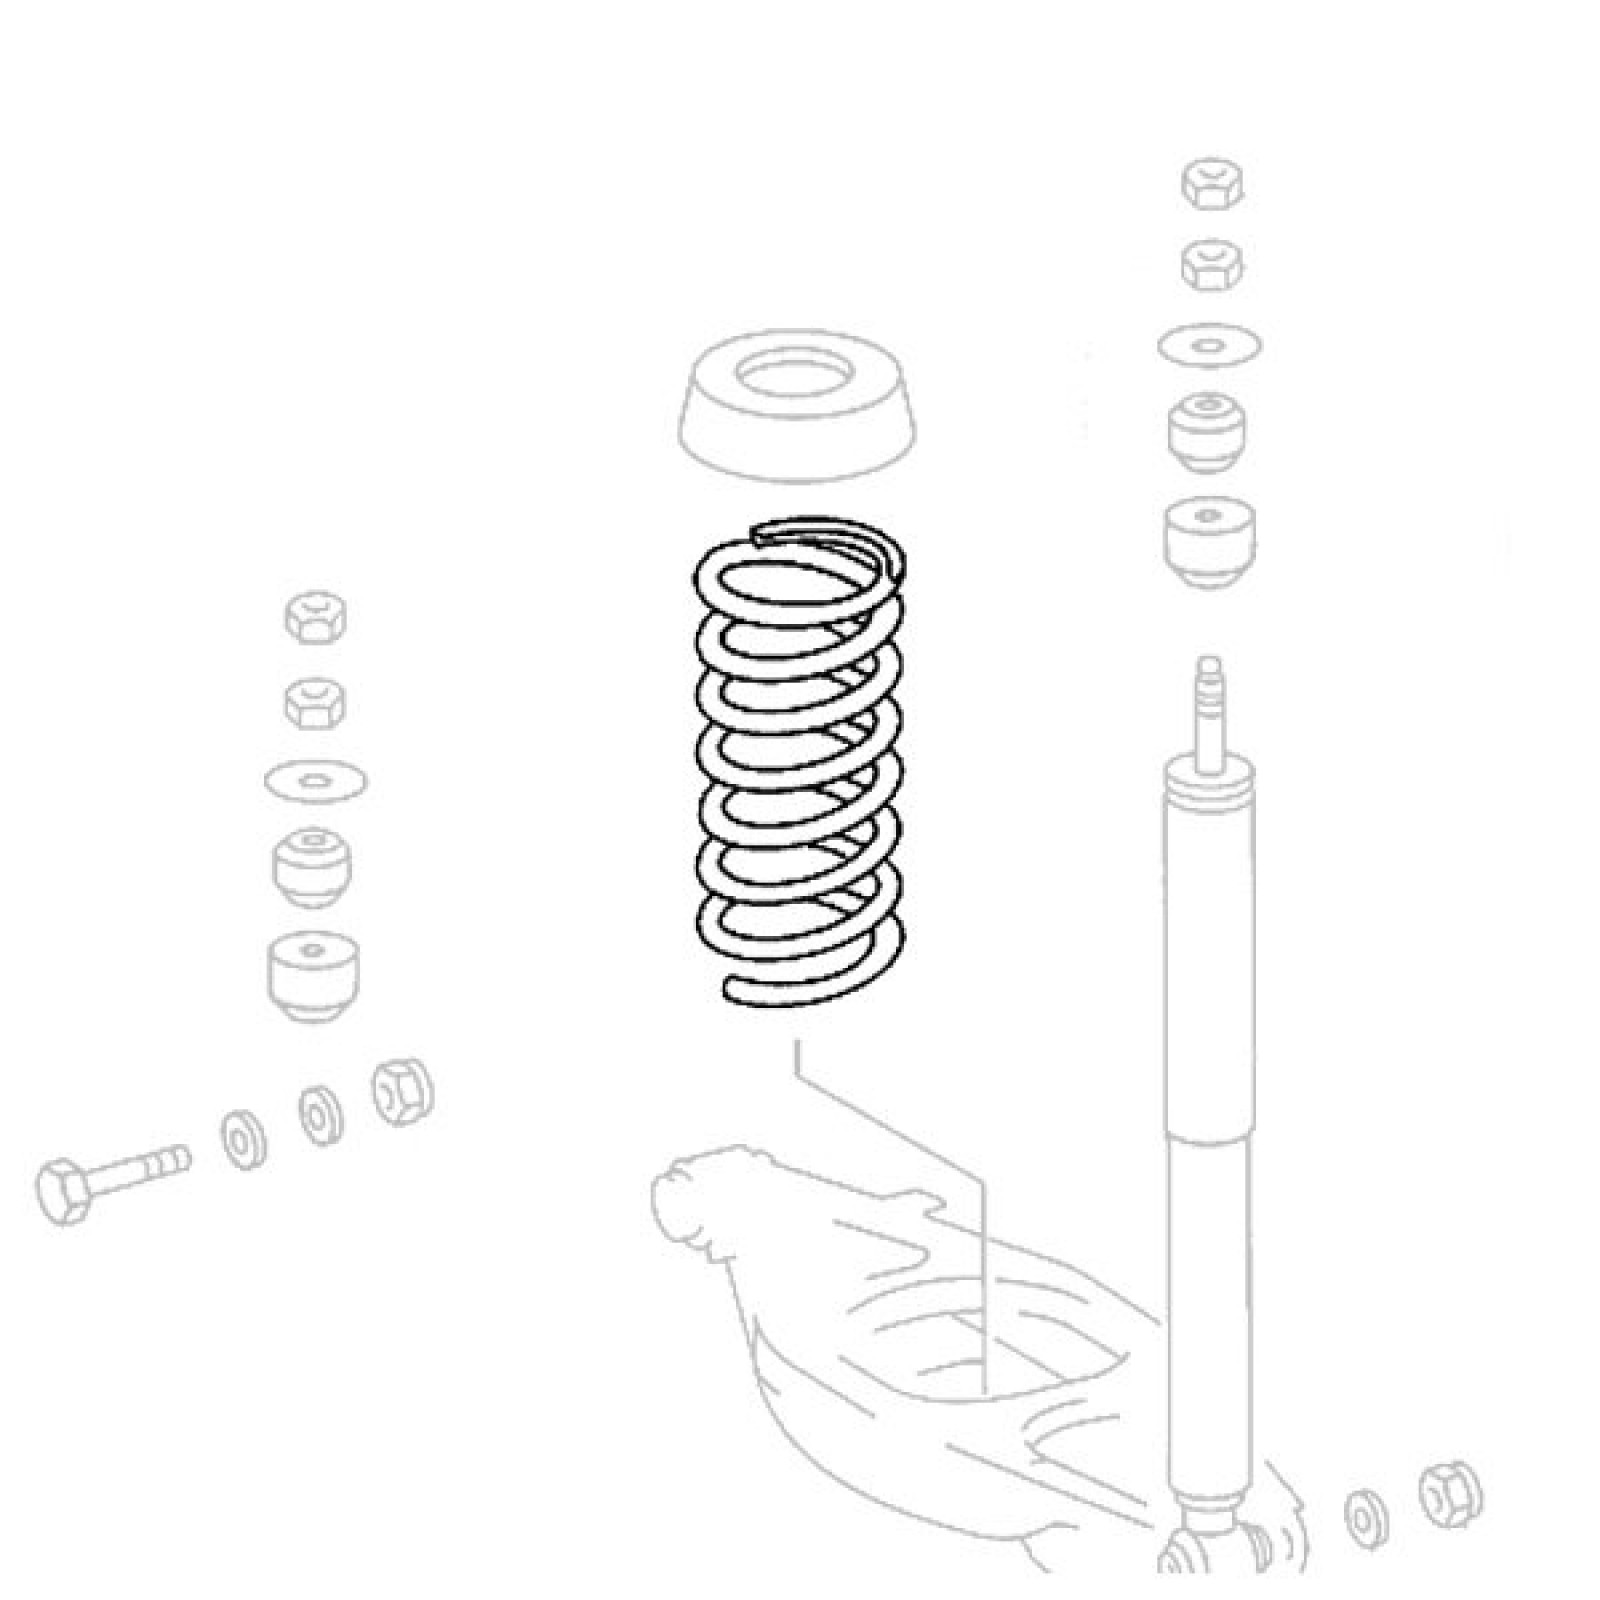 Mercedes Benz Sl R129 Rear Suspension Spring